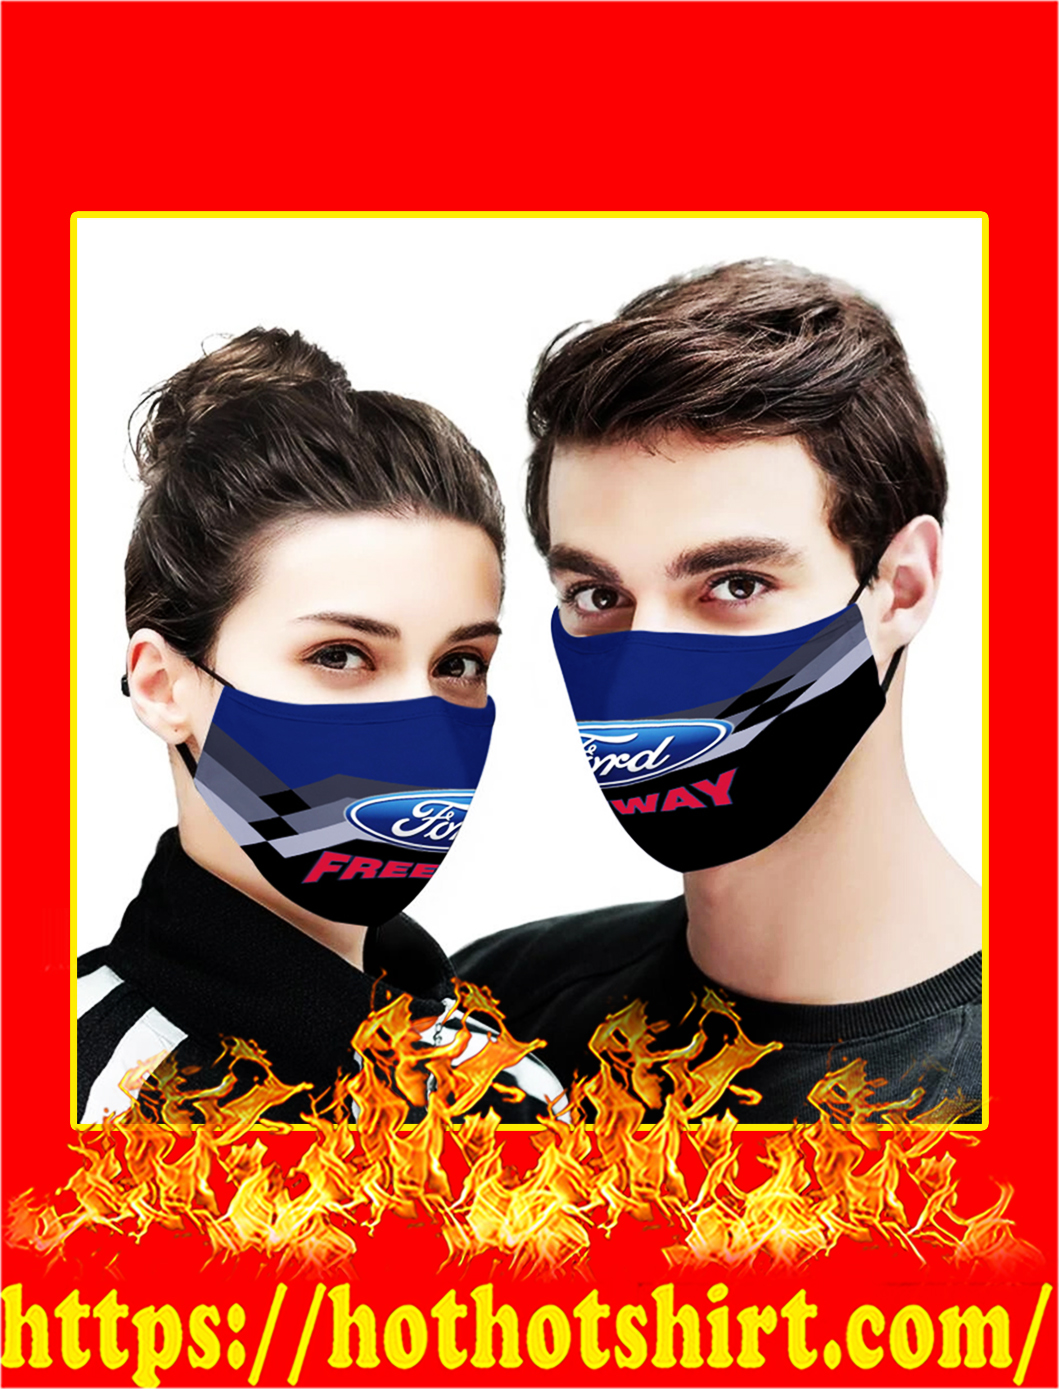 Freeway Ford 3d face mask- pic 1